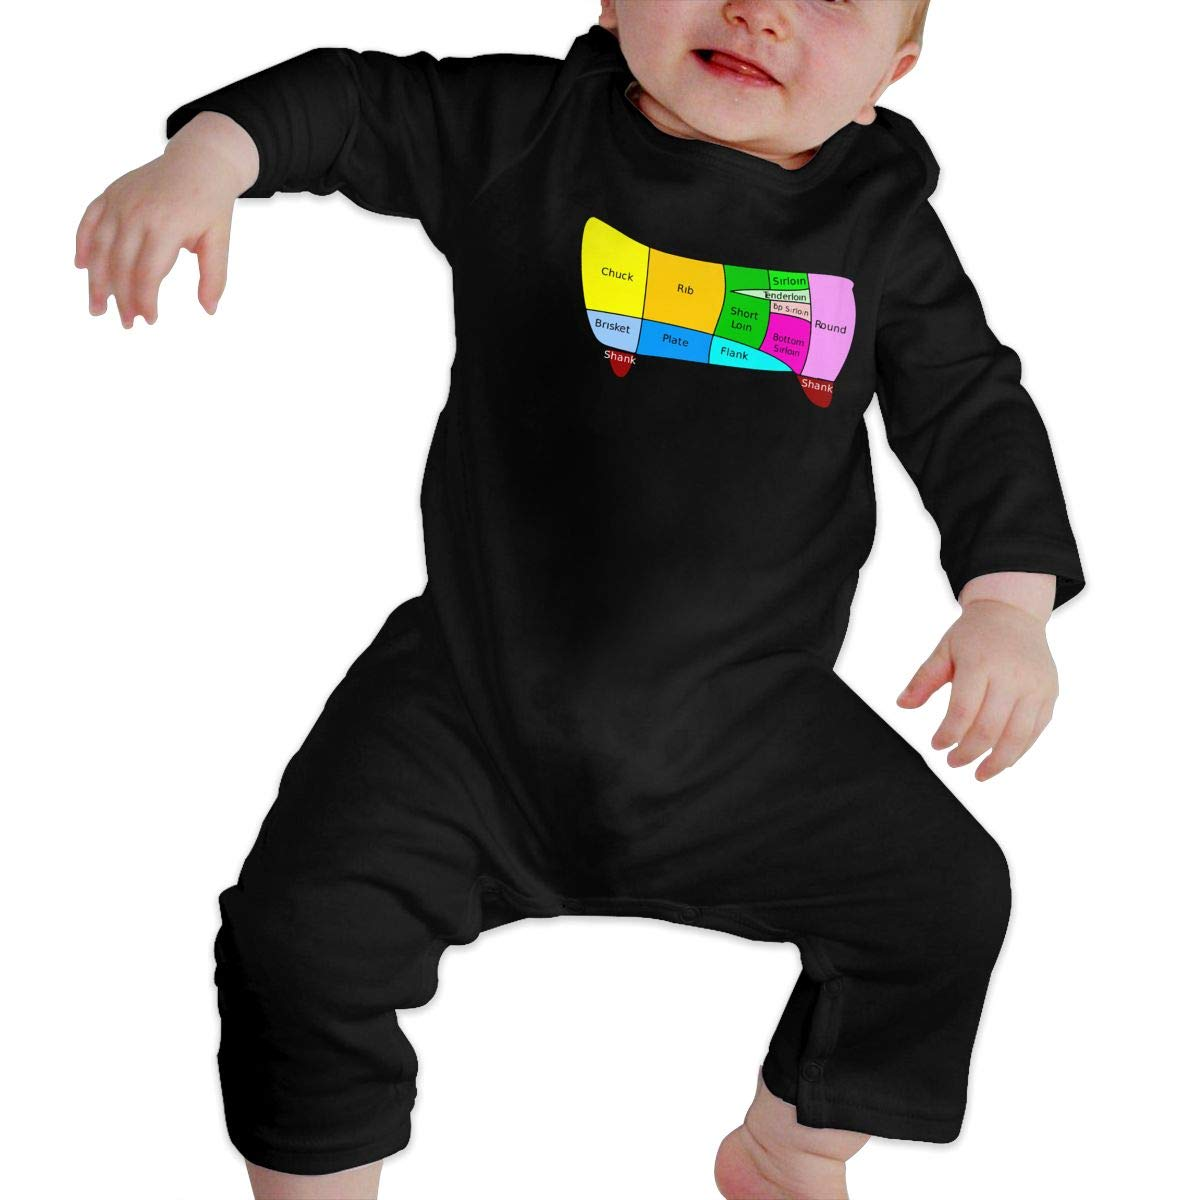 U99oi-9 Long Sleeve Cotton Rompers for Baby Boys and Girls Fashion Dutch Beef Cuts Playsuit